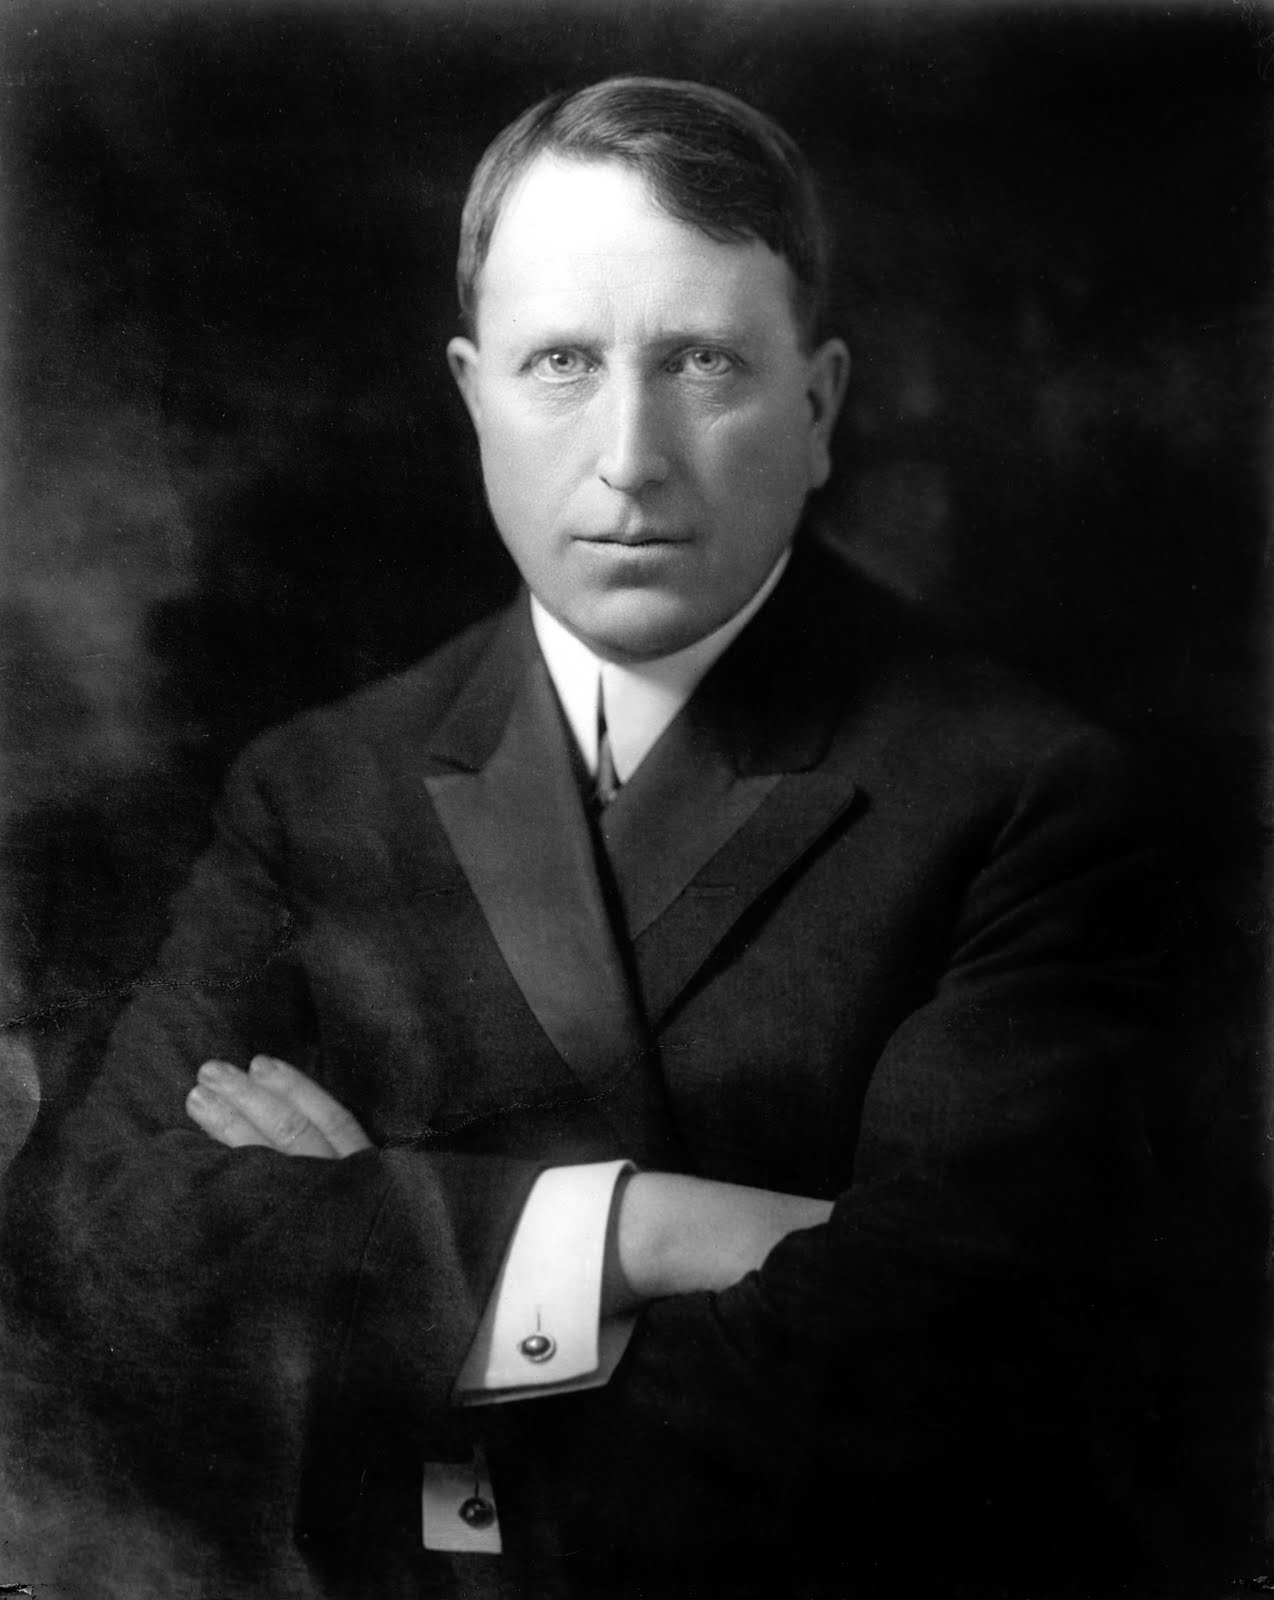 william randolph hearst essay William randolph hearst was a larger-than-life figure who, for a time, controlled  much of the us news media read about his rise and fall on biographycom.